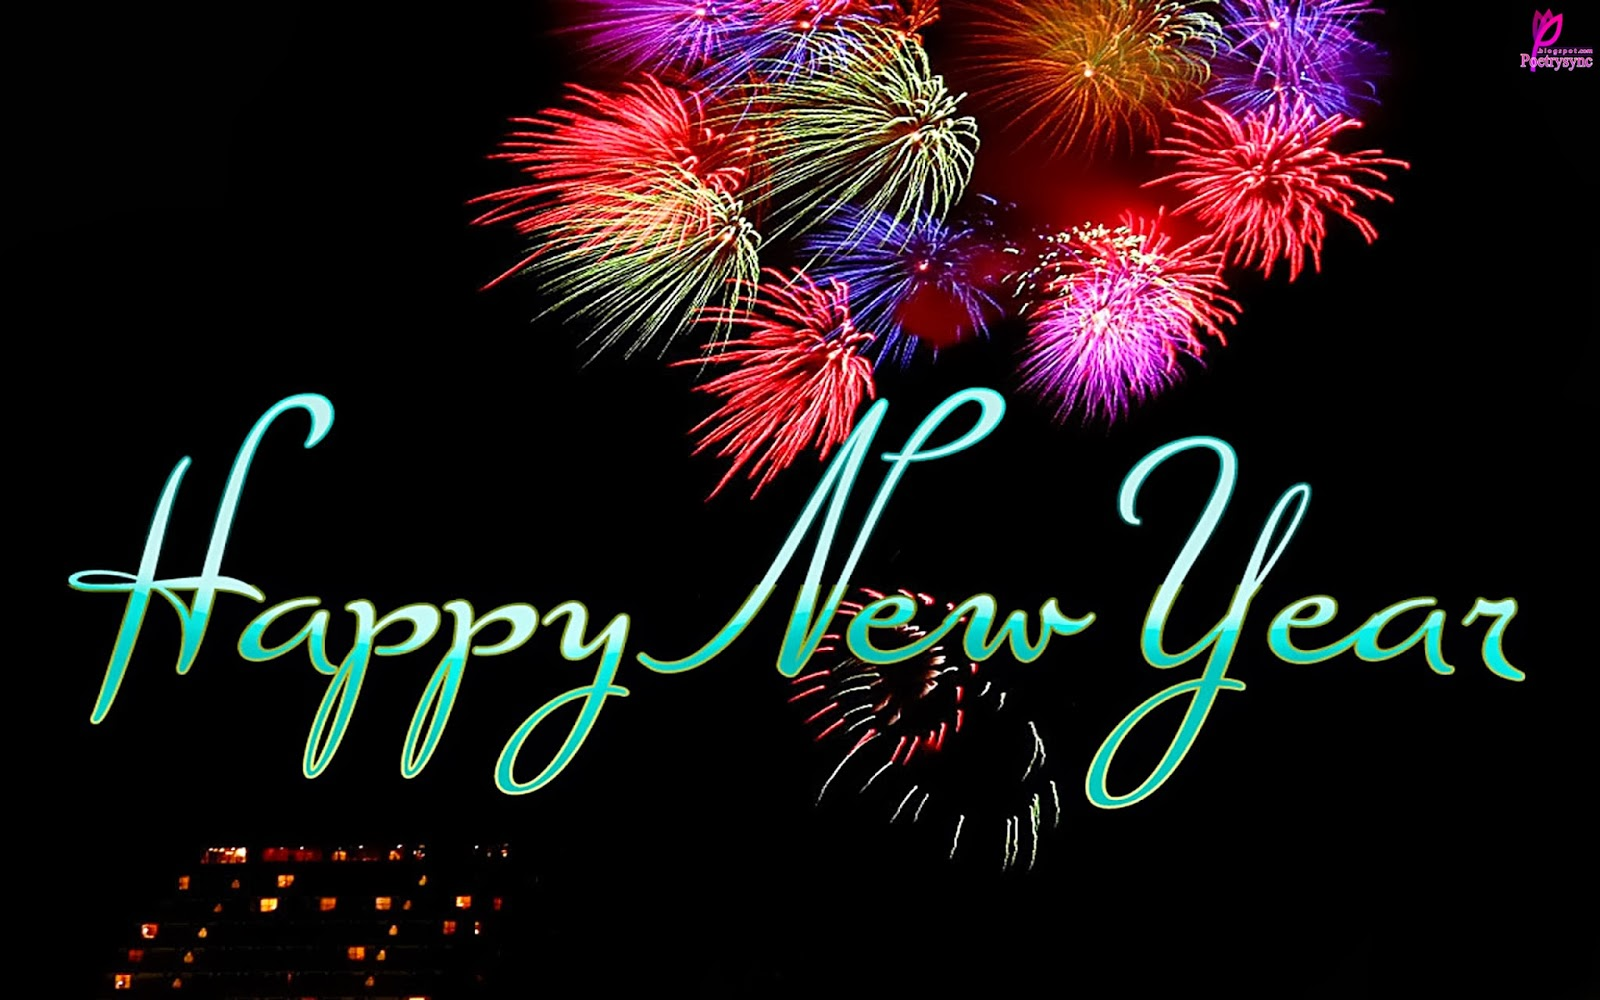 Happy new year wishes source of inspiration happy new year wishes m4hsunfo